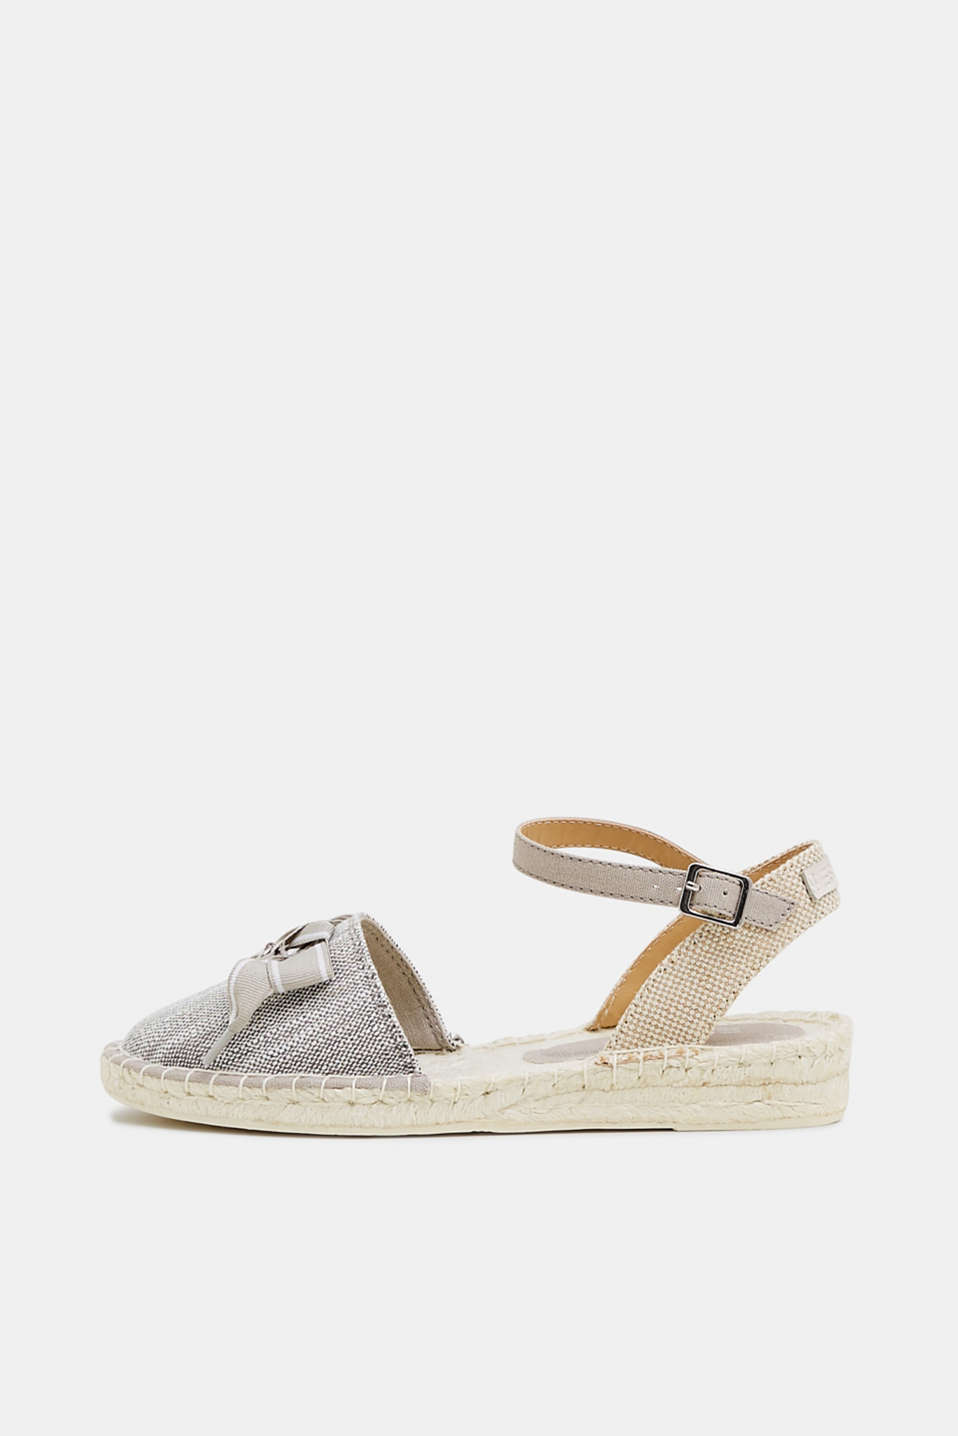 Esprit - Espadrille sandals with a bow